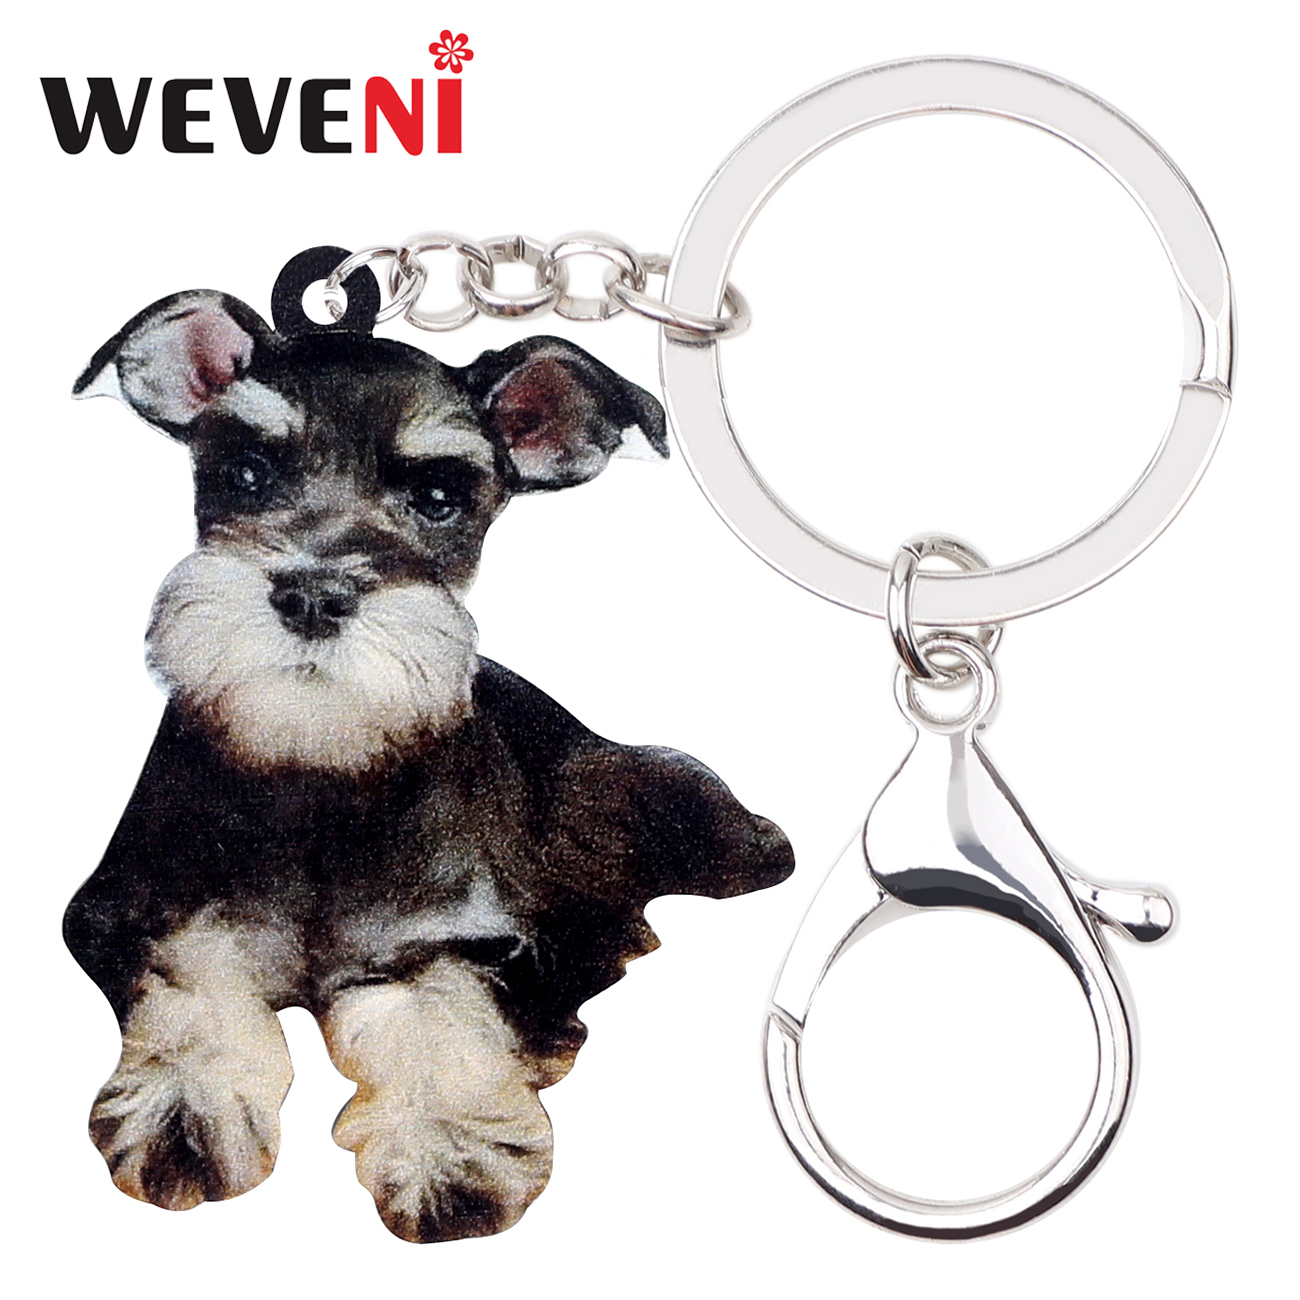 WEVENI Acrylic Cute Schnauzer Dog Key Chains Keychains Rings Animal Jewelry For Women Girls Bag Wallet Pendant Charms Wholesale